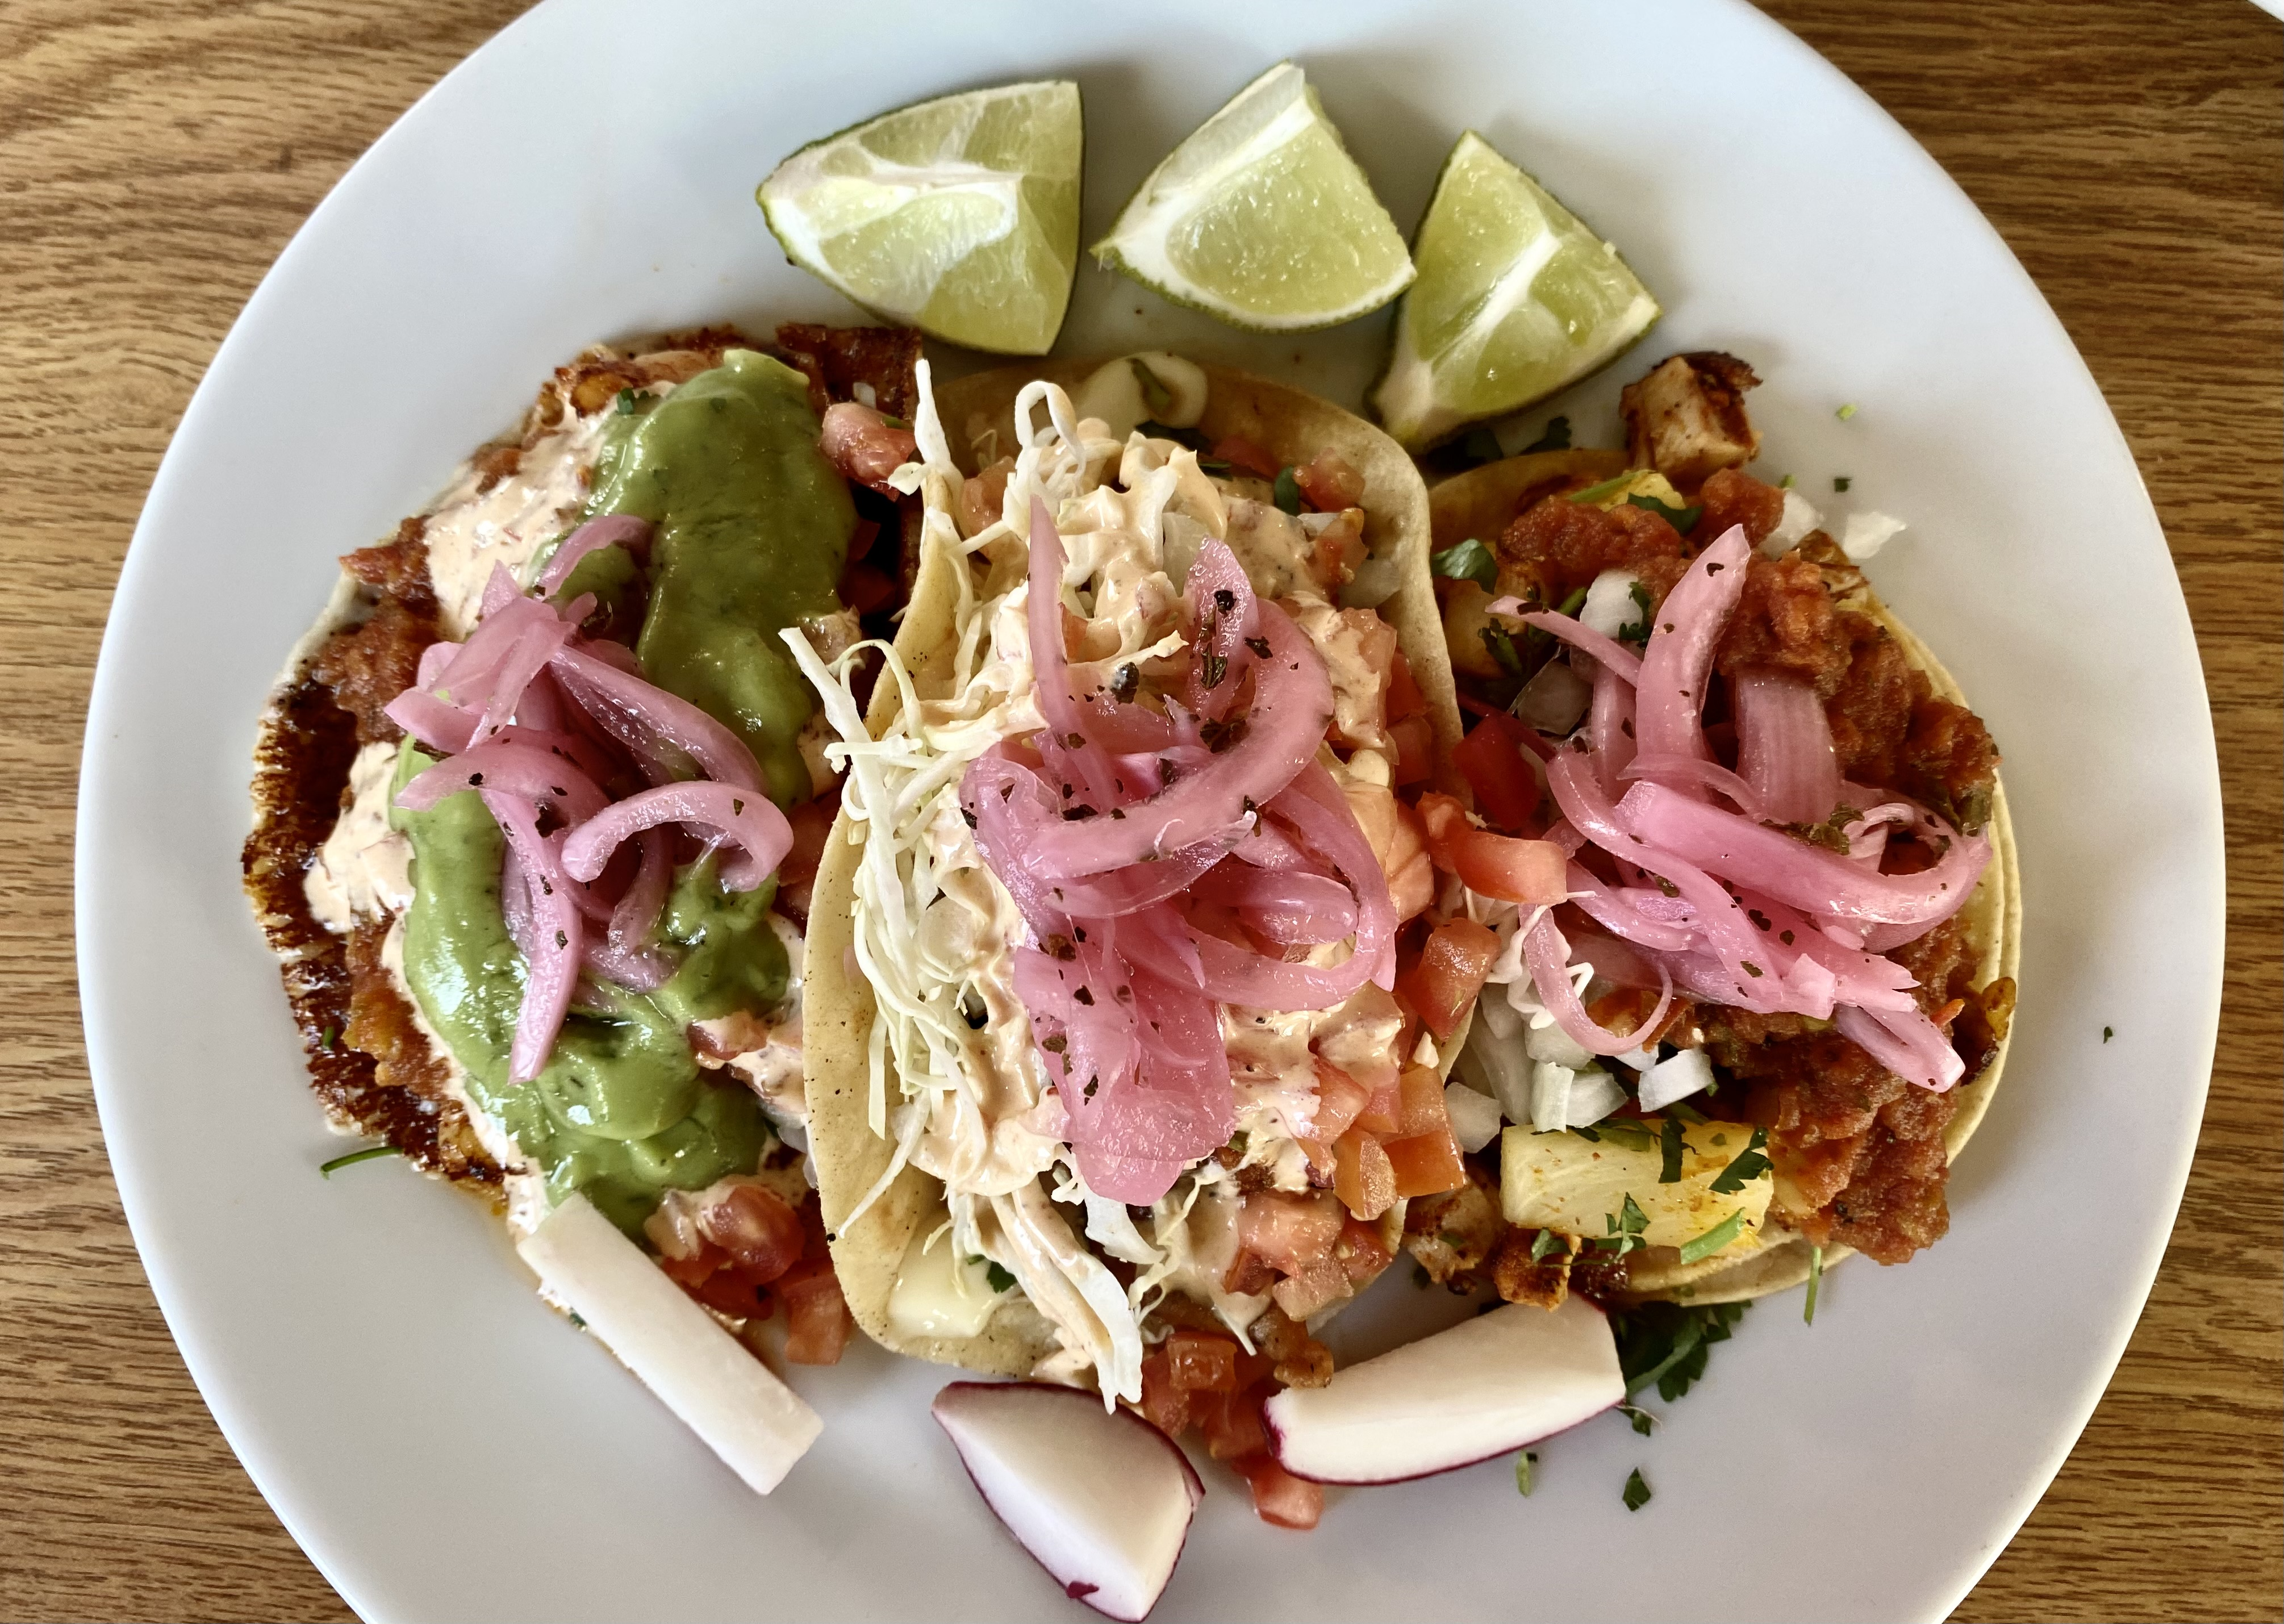 Specialty tacos. (Image: Karen Rose / Seattle Refined)